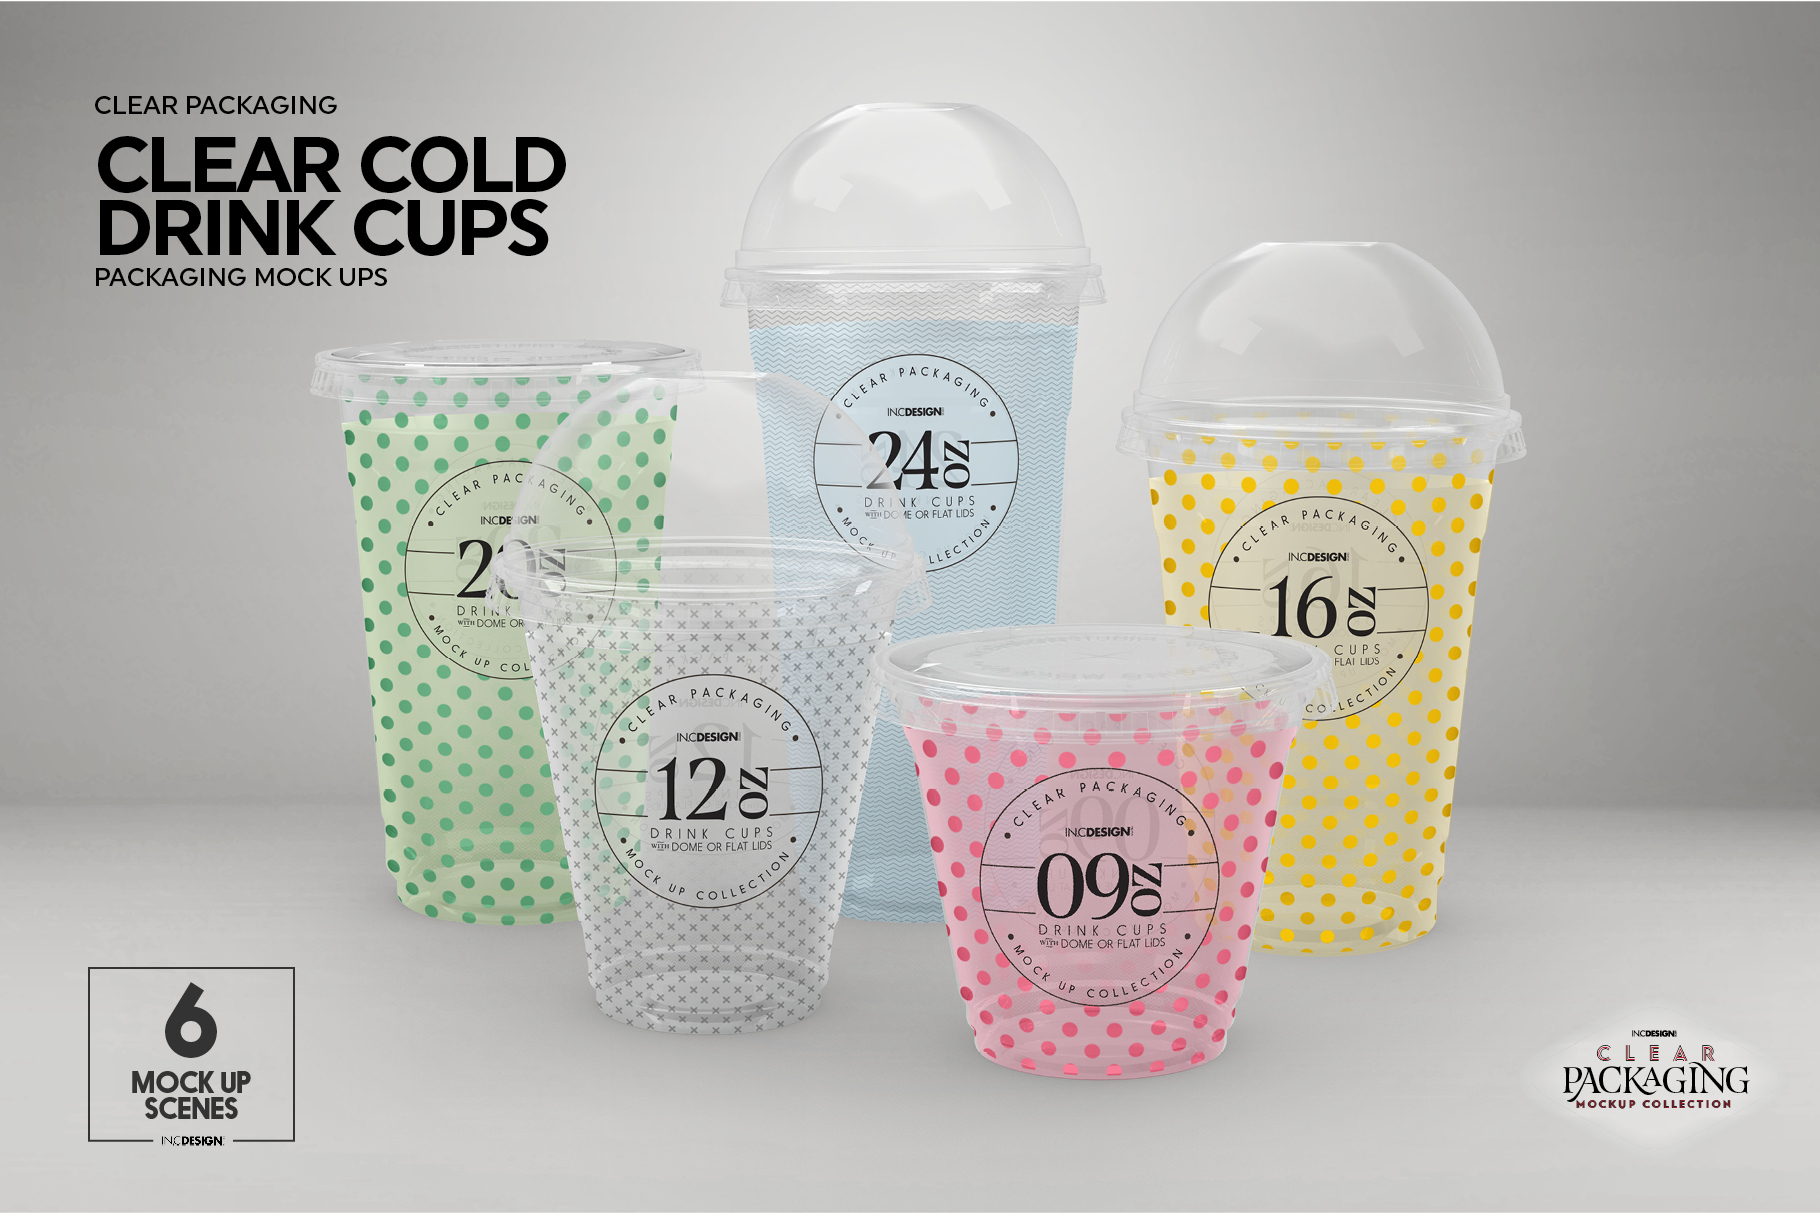 Clear Cold Drink Cups Packaging Mockup example image 3